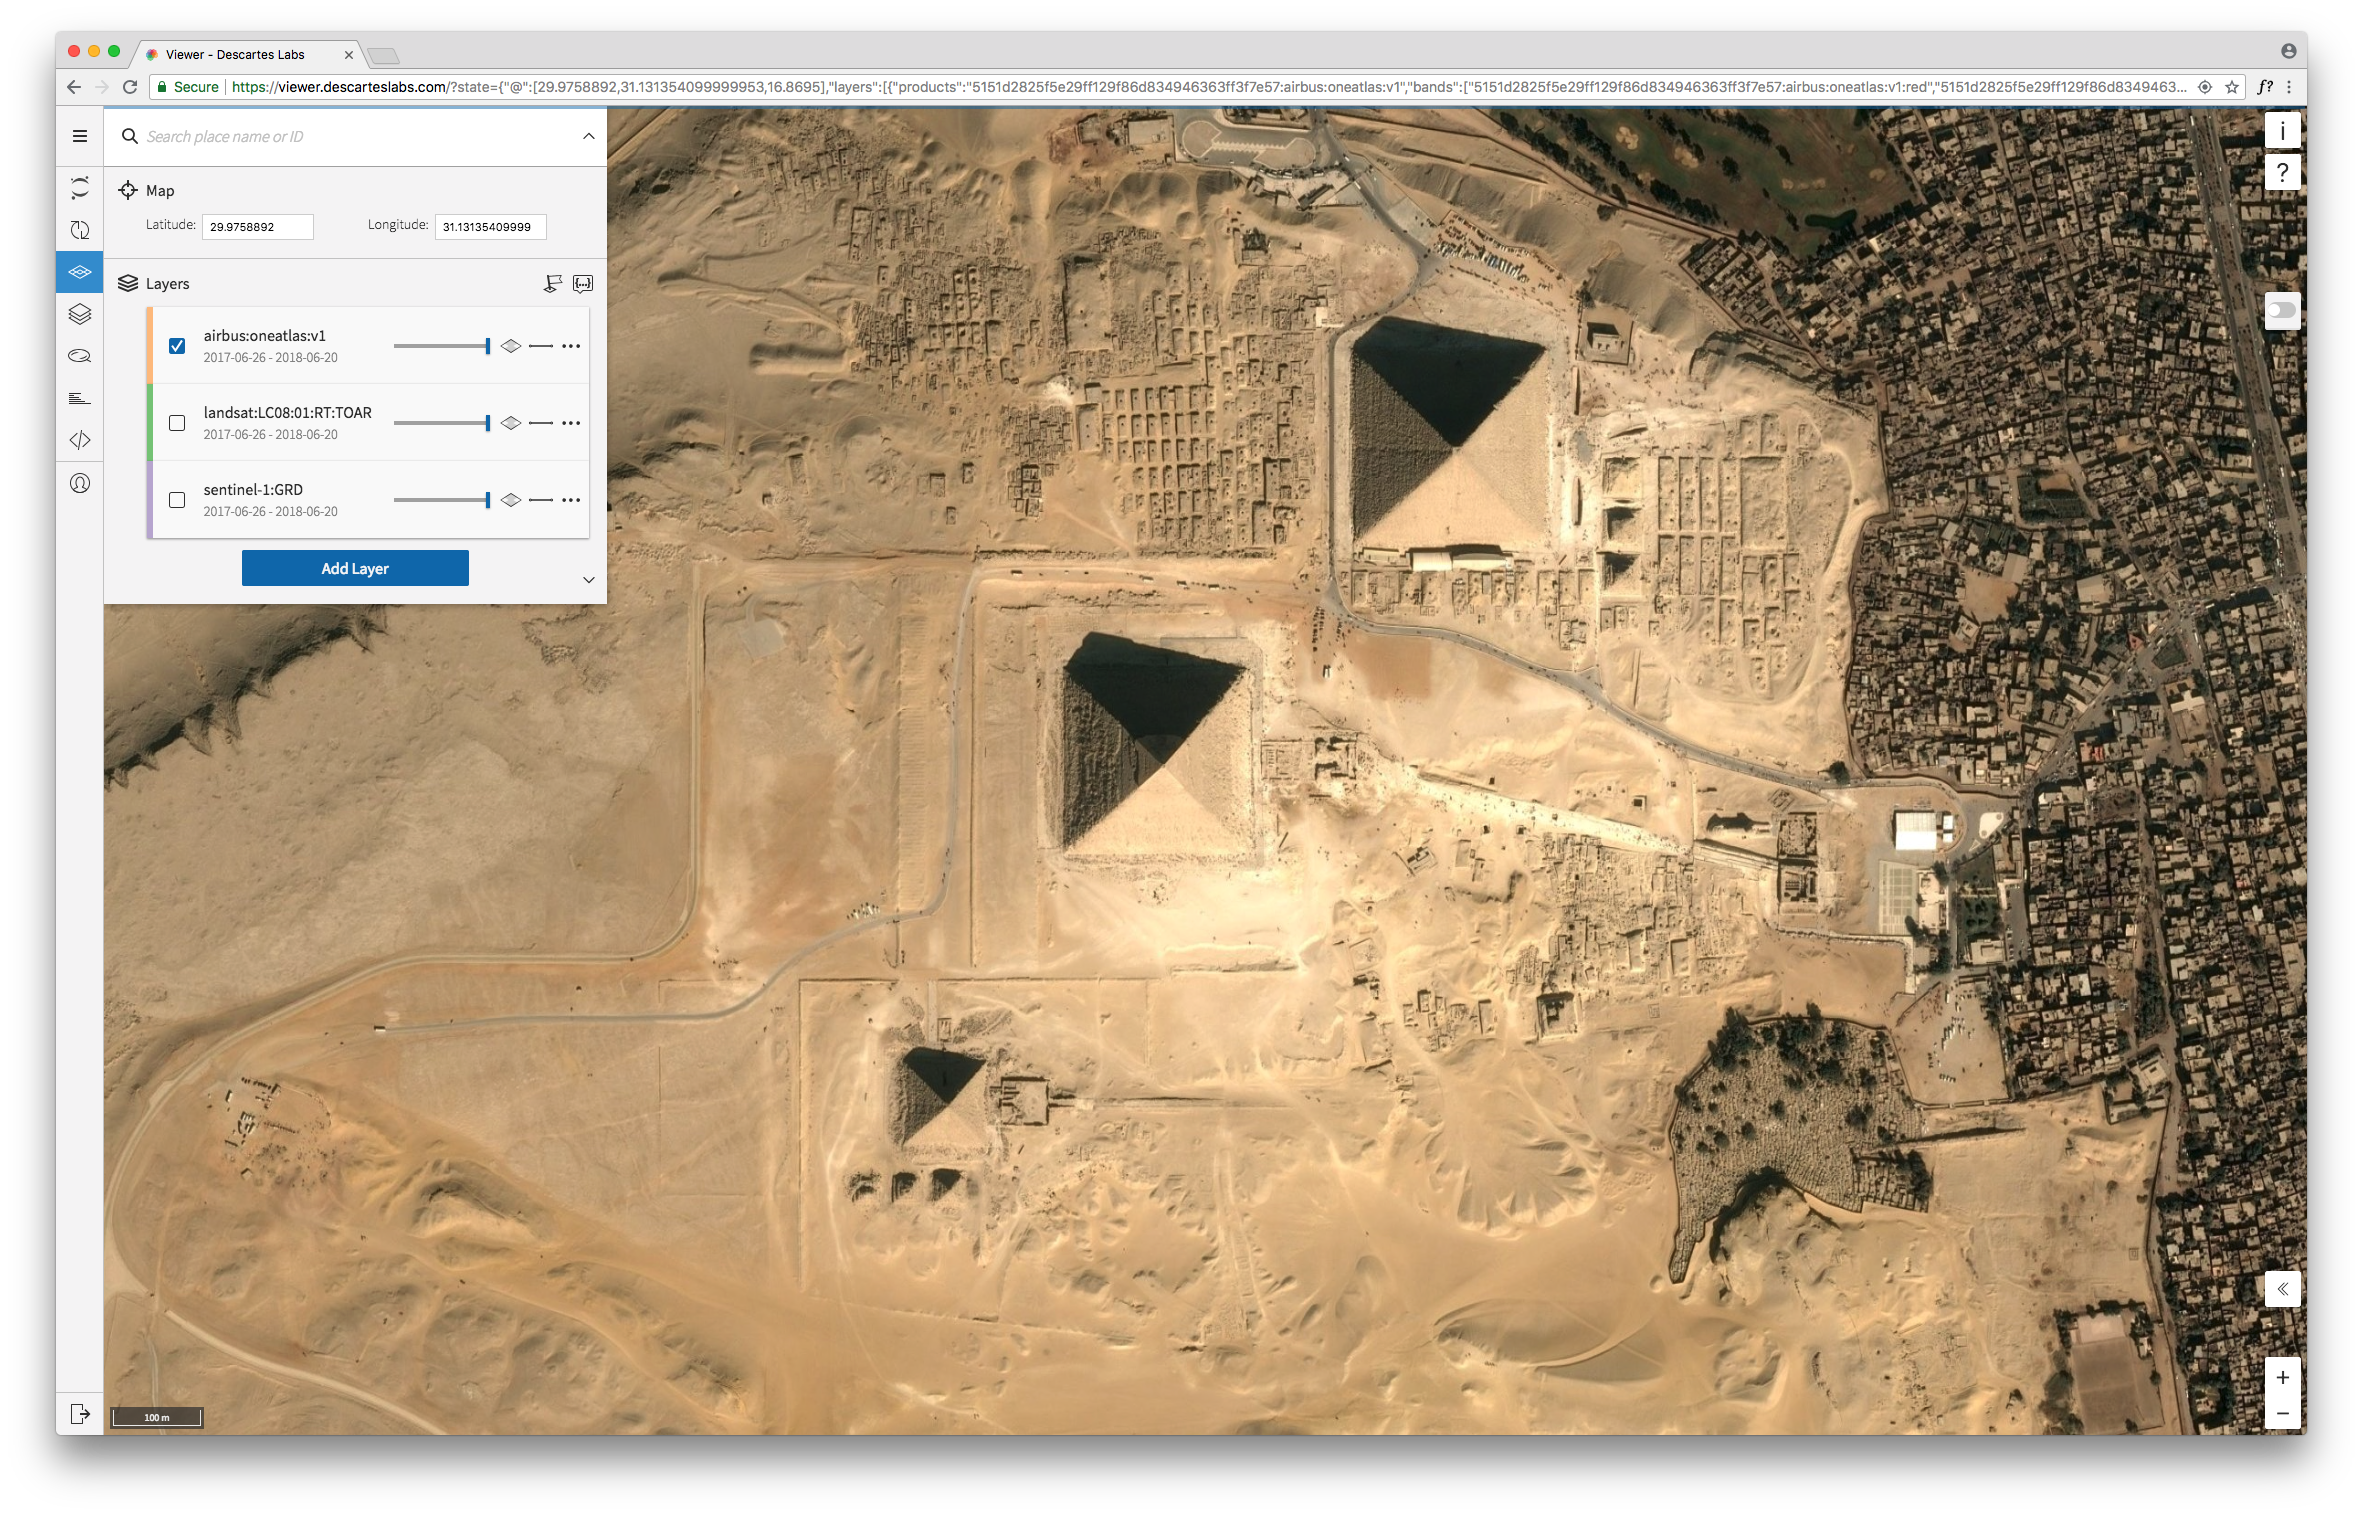 Descartes Labs launches its geospatial analysis platform